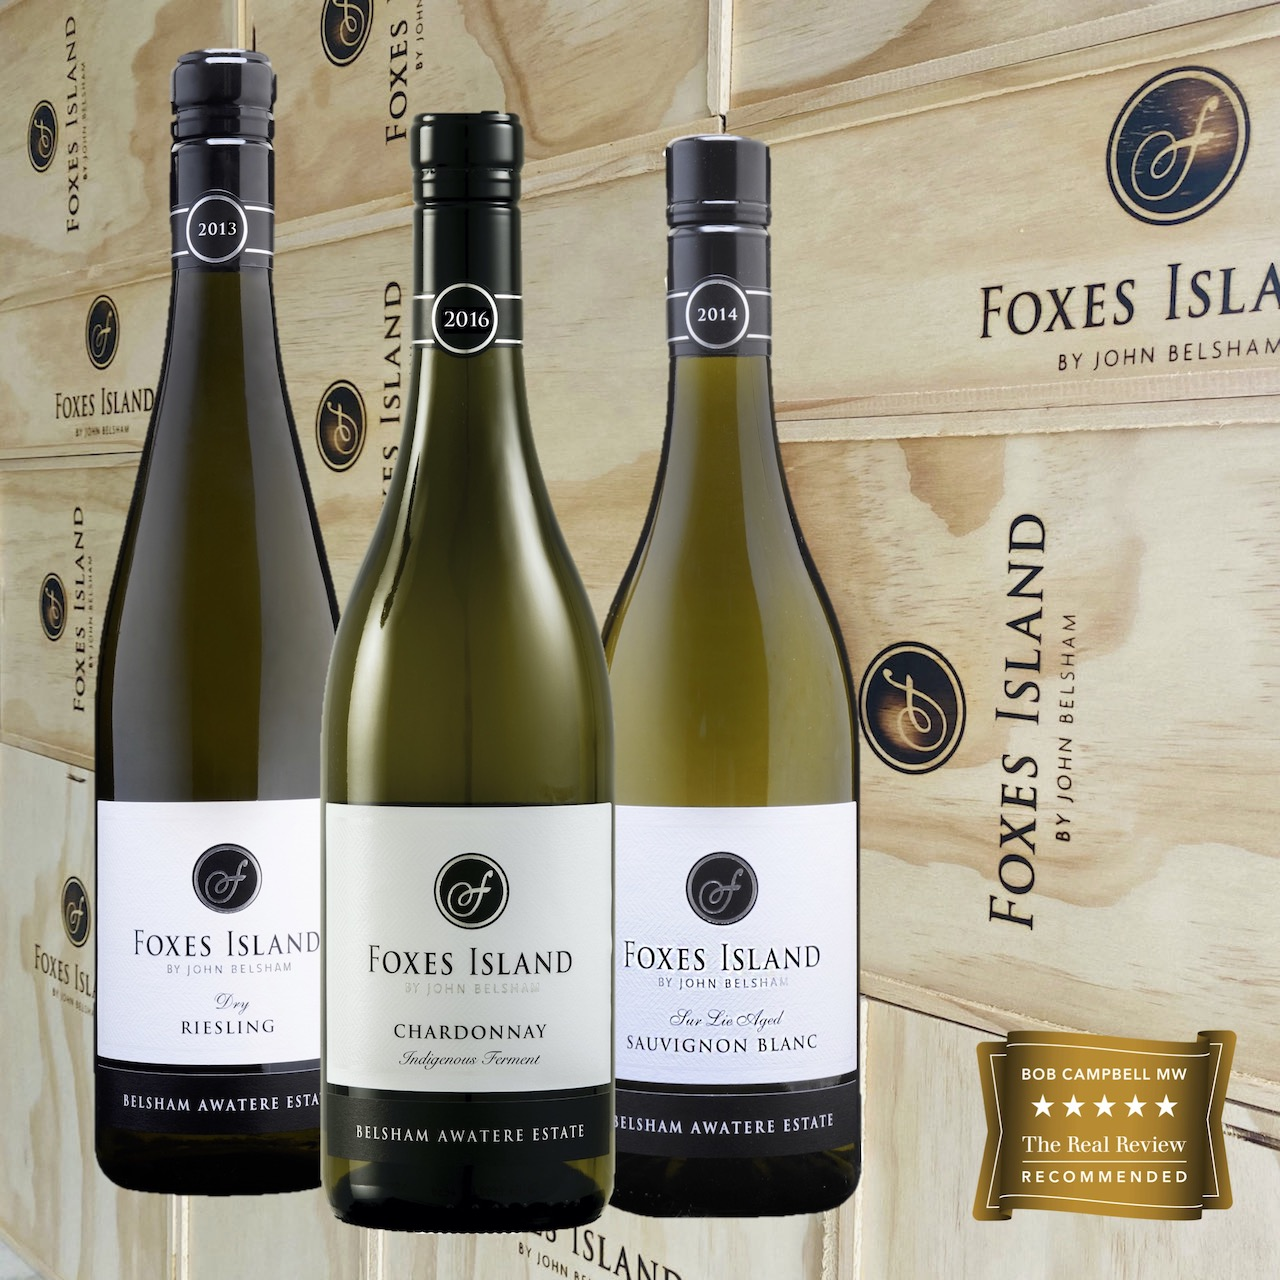 Foxes Island White Wines